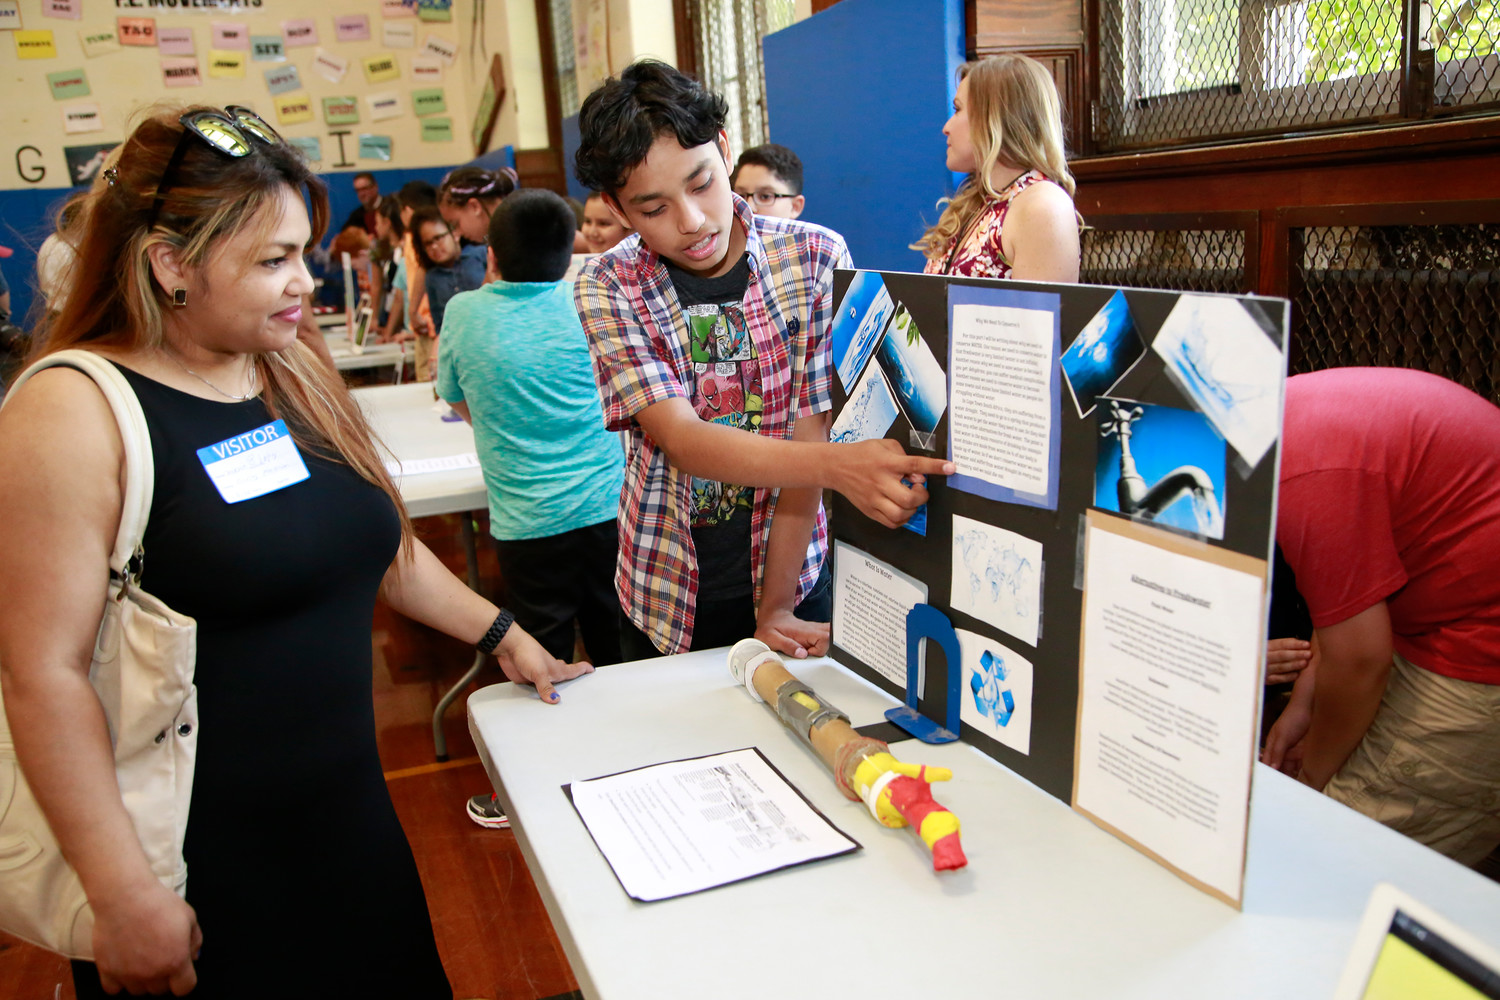 Jasper Lopez, above right, explained his project on water to his mother, Maria.